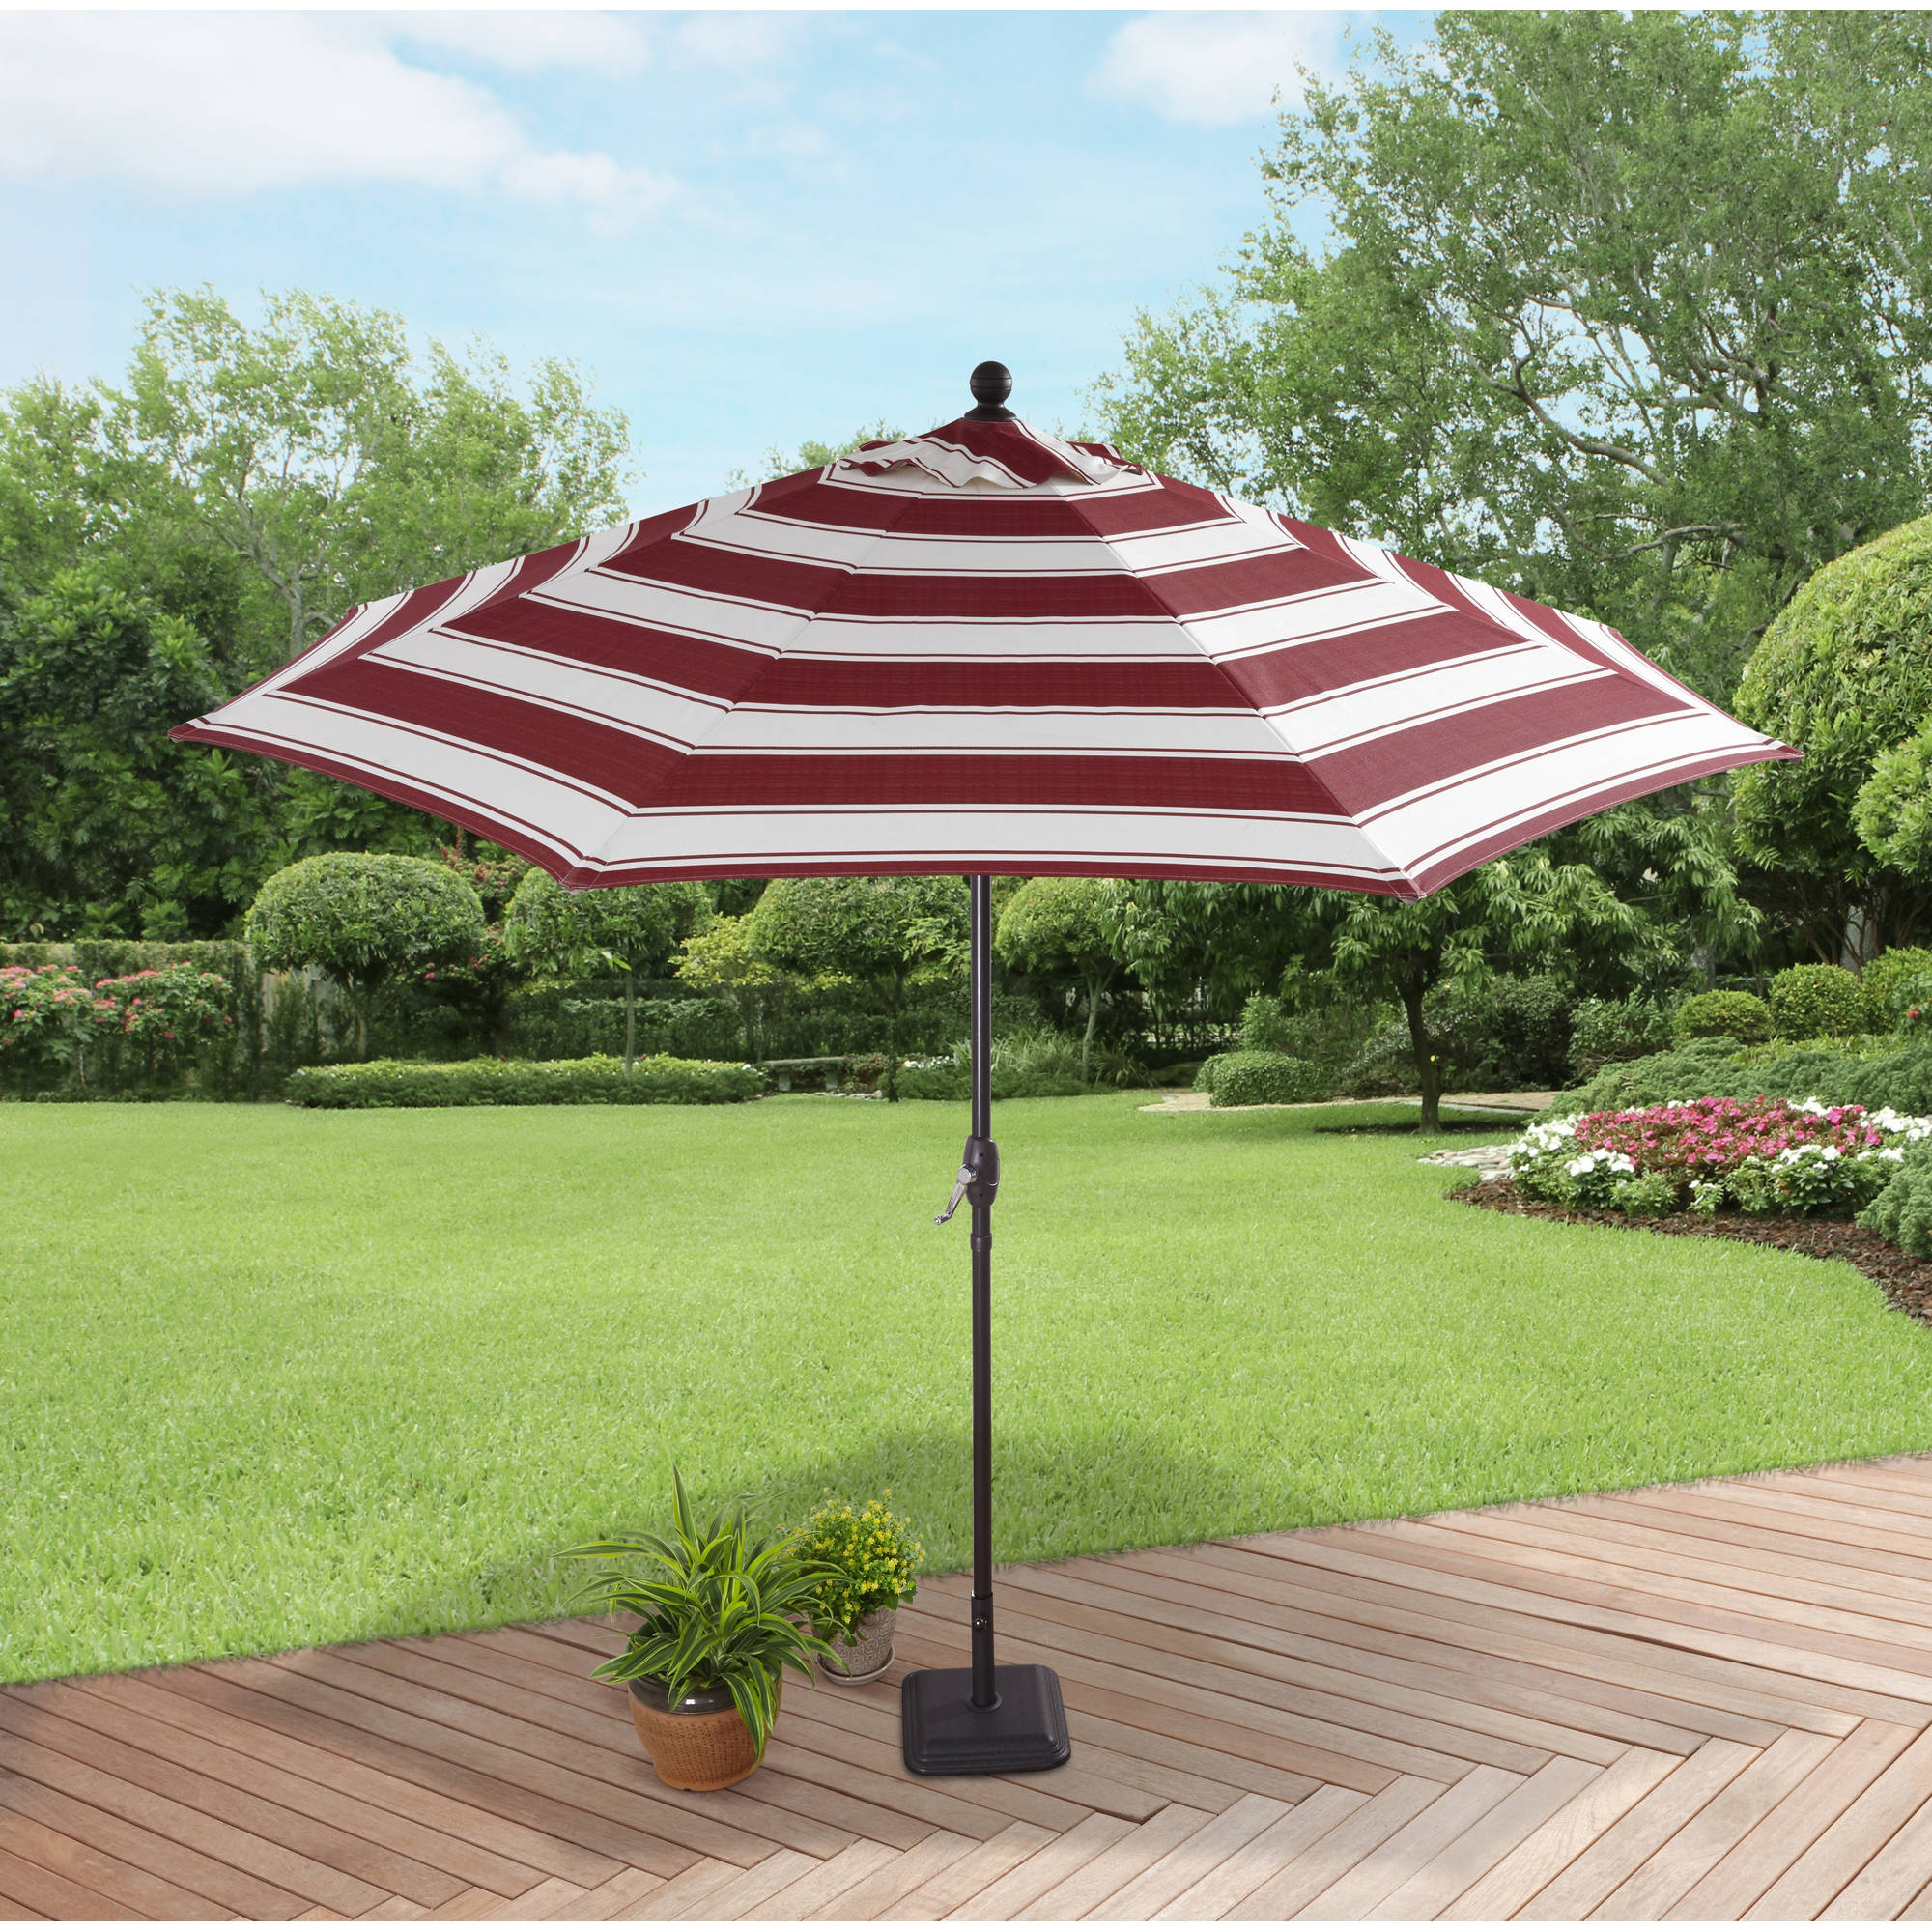 Better Homes and Gardens 9' Market Umbrella, Wide Cabana Stripe Red by